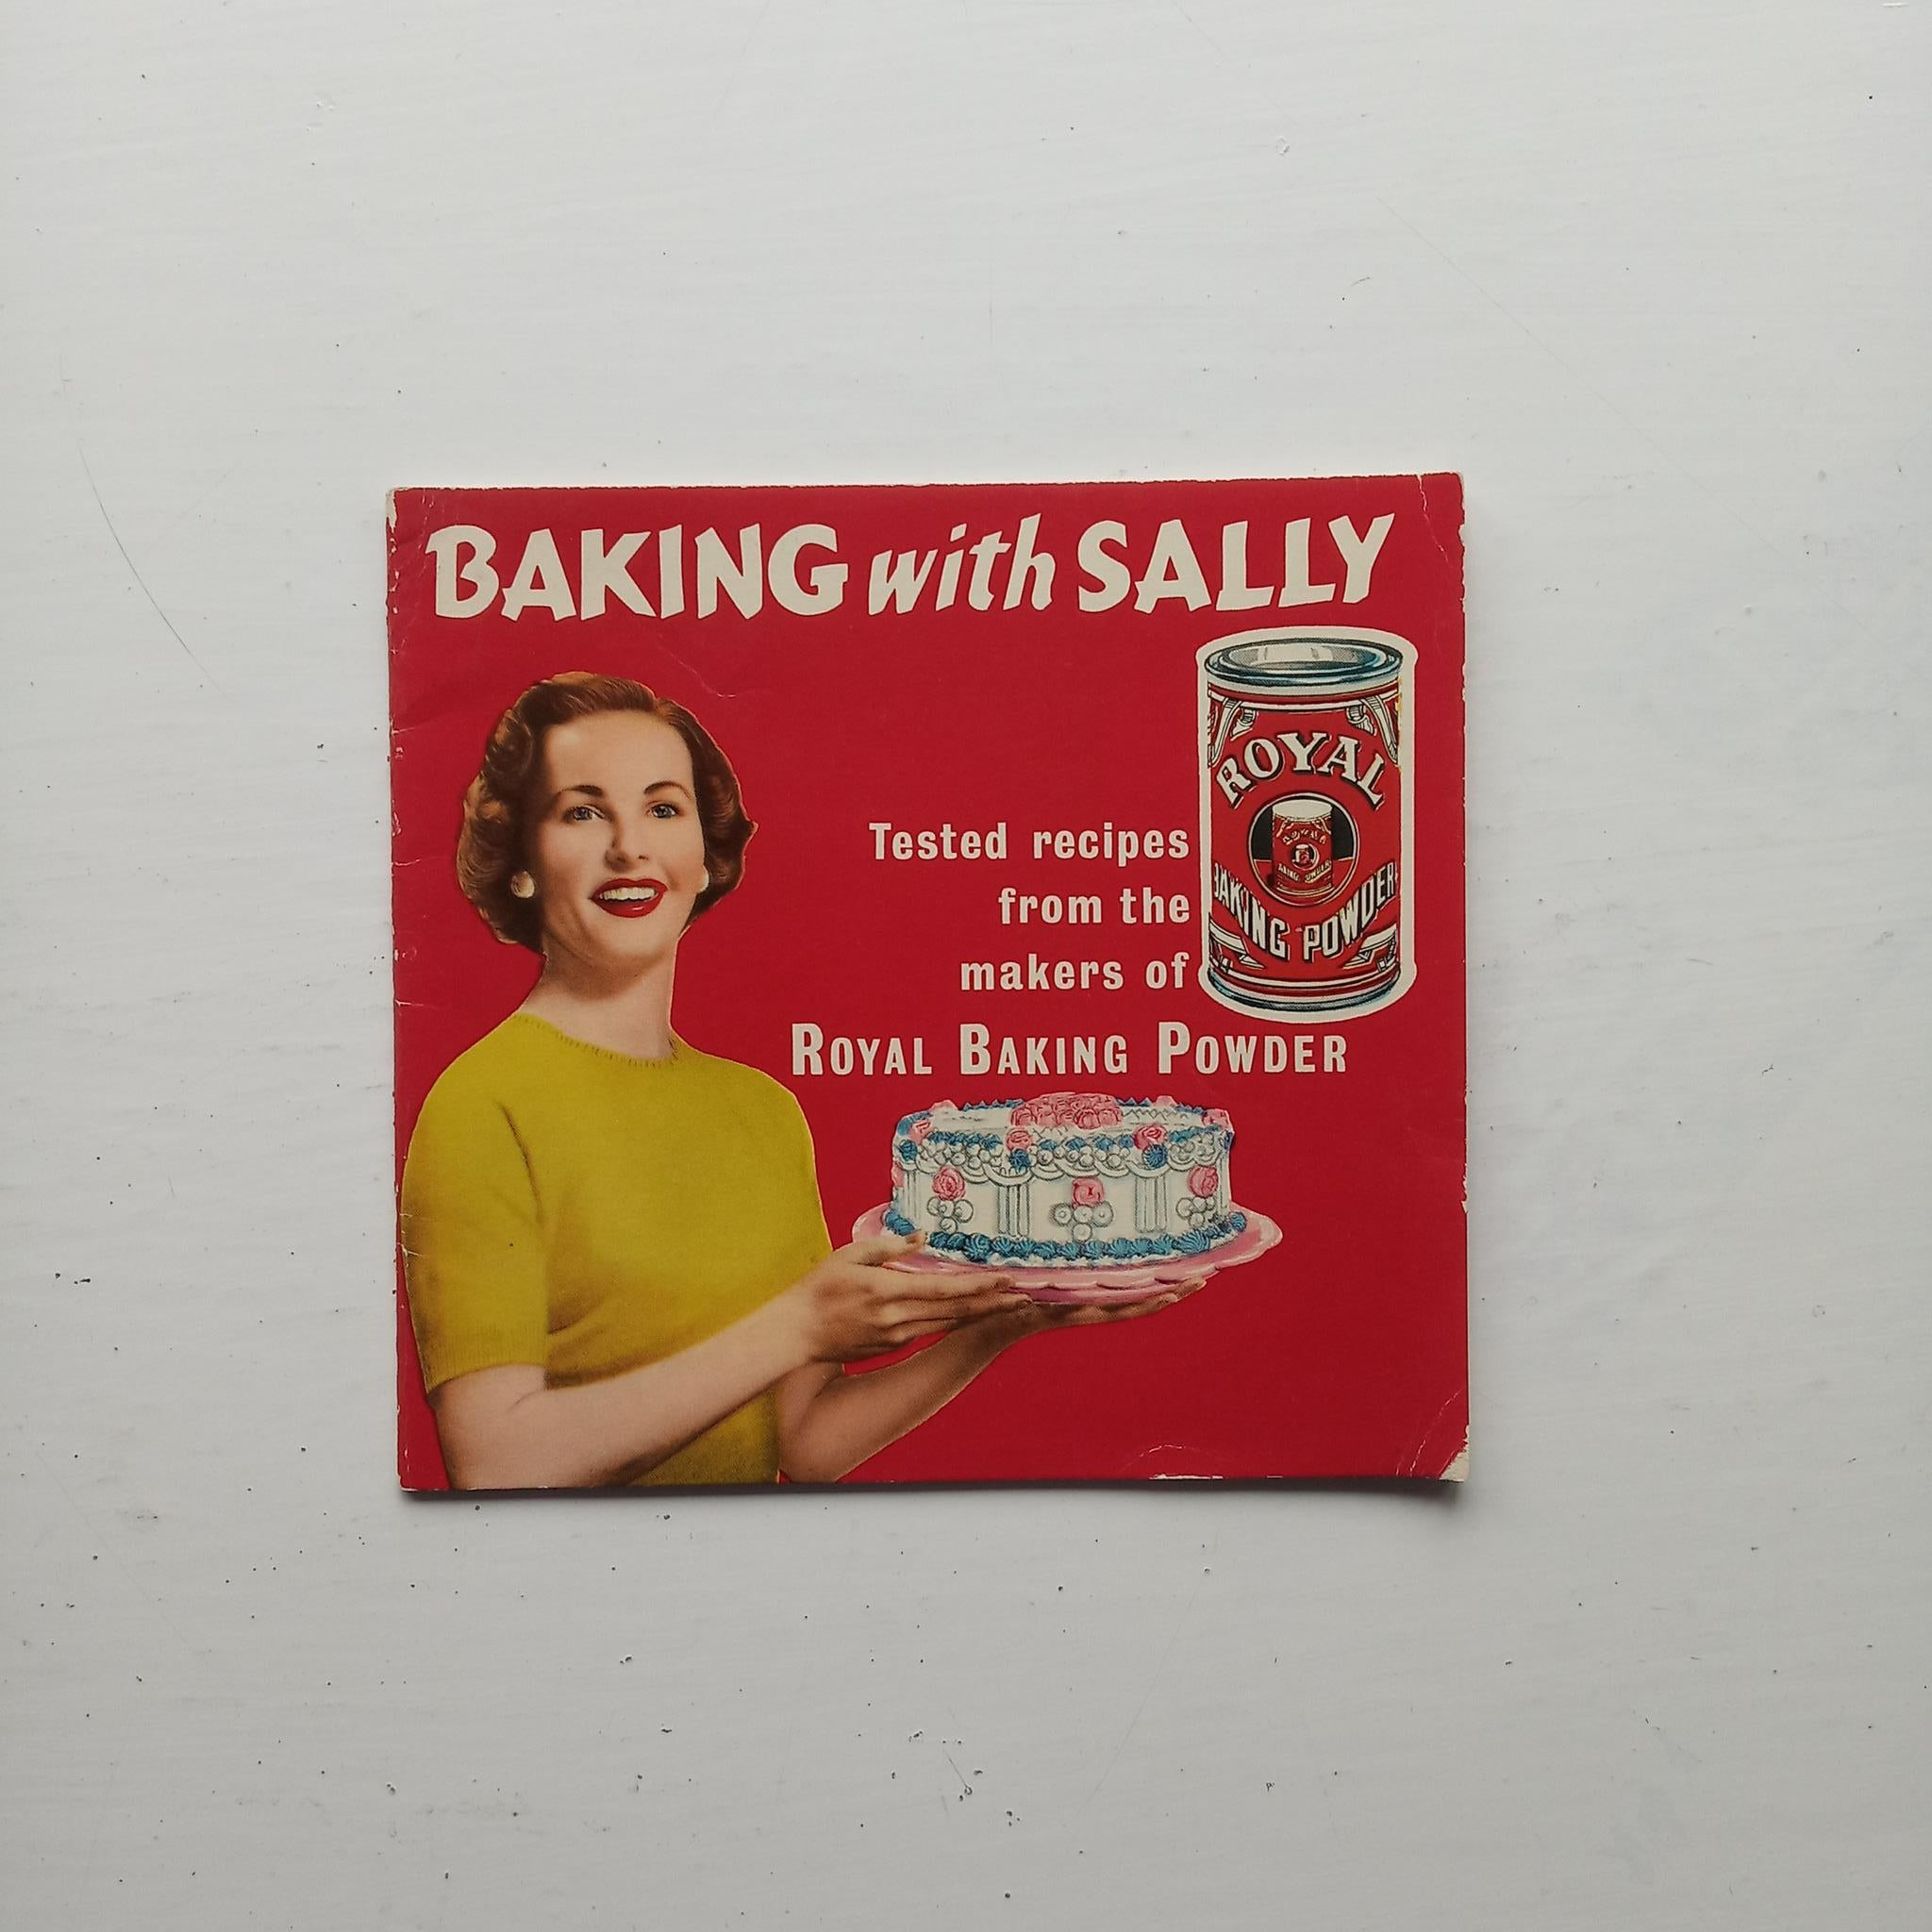 Baking with Sally by Standard Brands Ltd